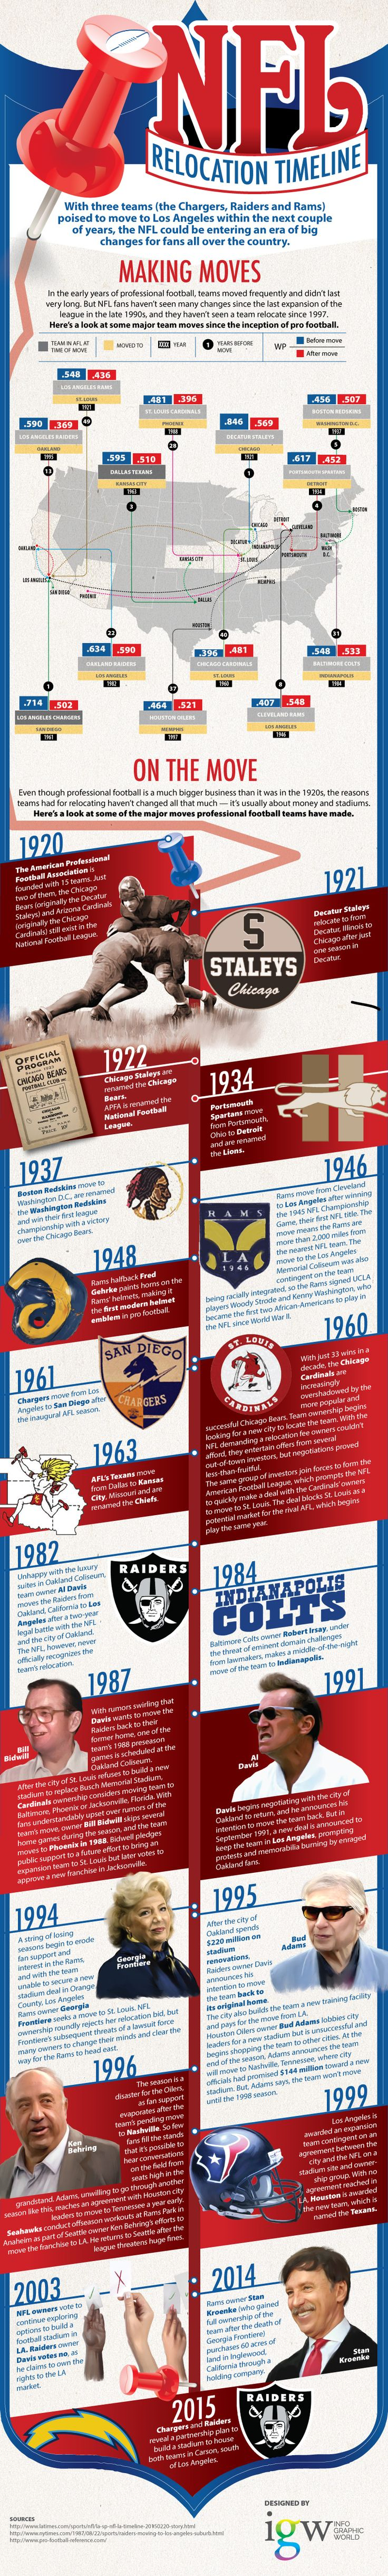 NFL Team Relocations Timeline [by Infographic World -- via Tipsographic] #NFL #NFLTeams #NFLRelocations #timeline  #tipsographic